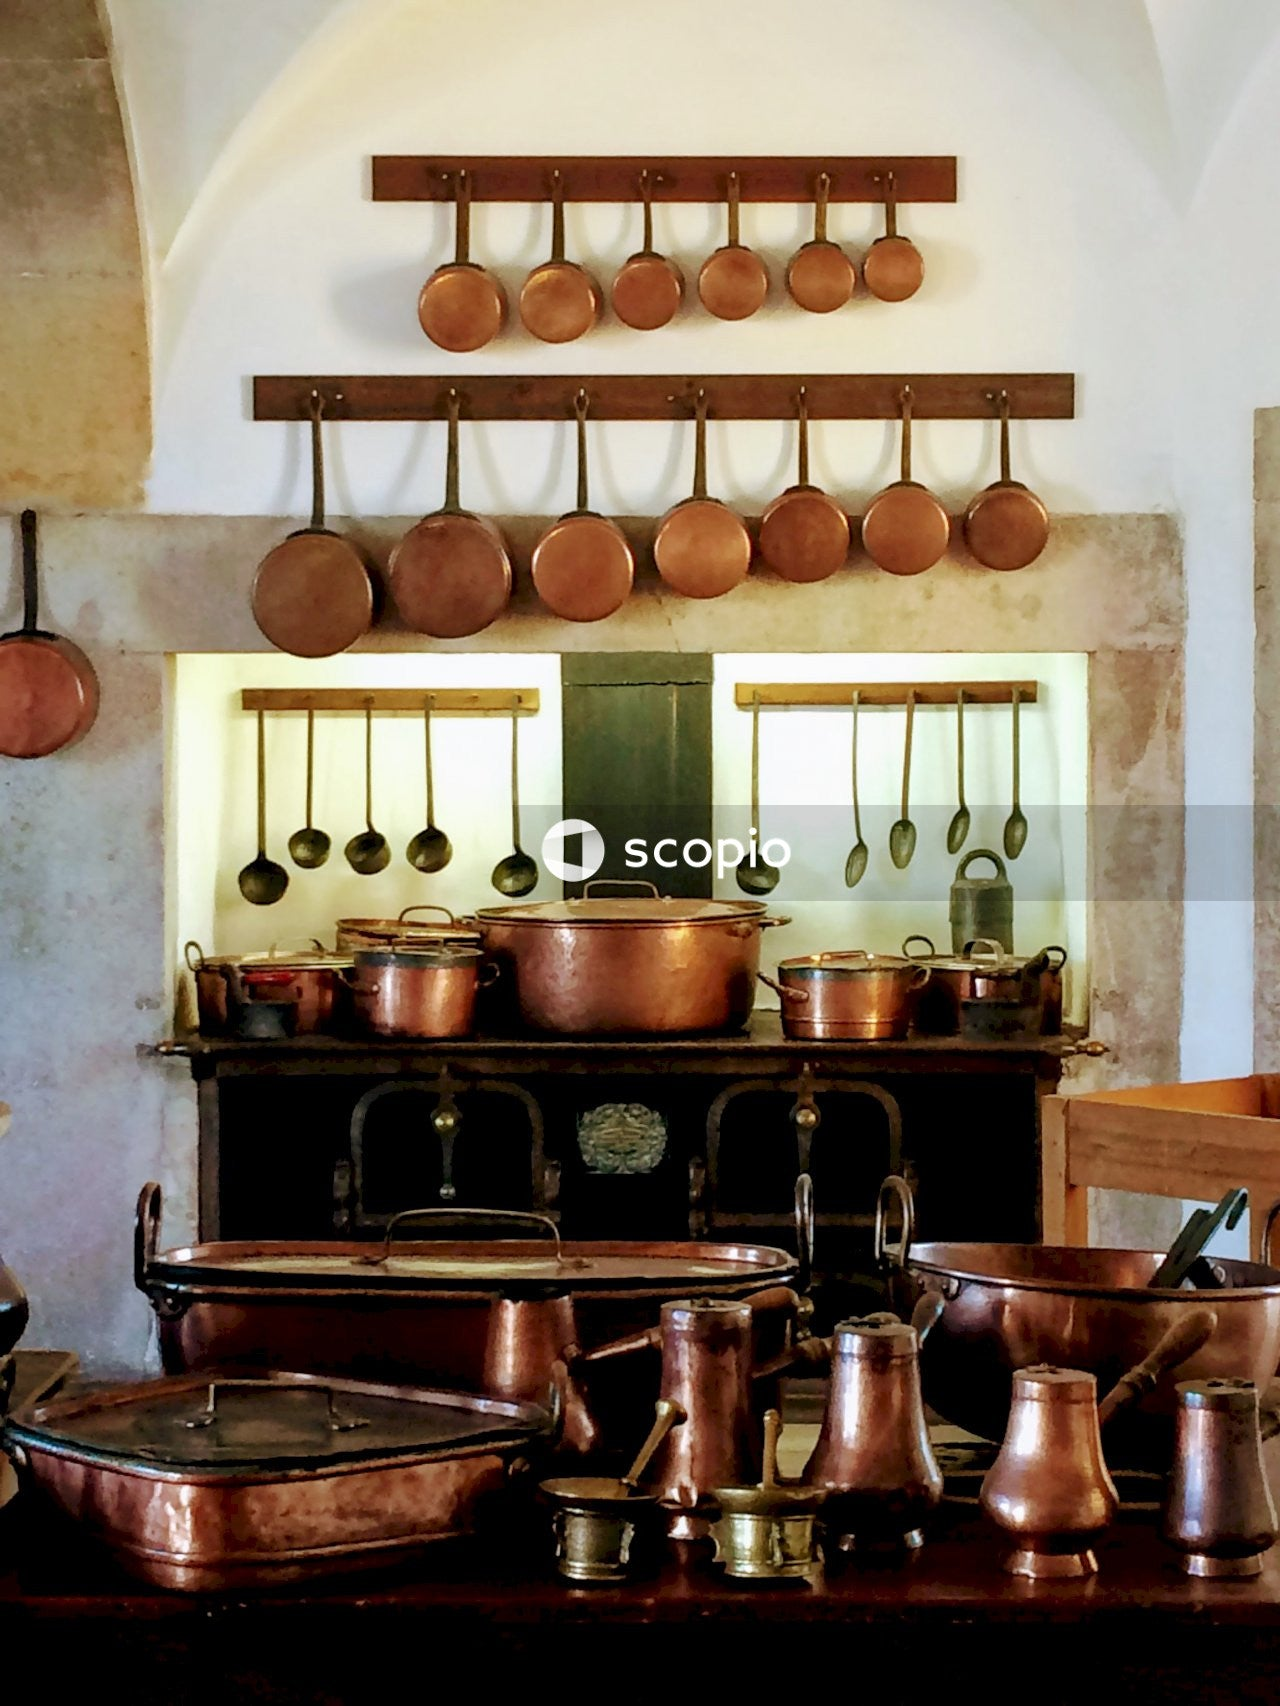 Brass-colored-and-black cooking pots and pans set